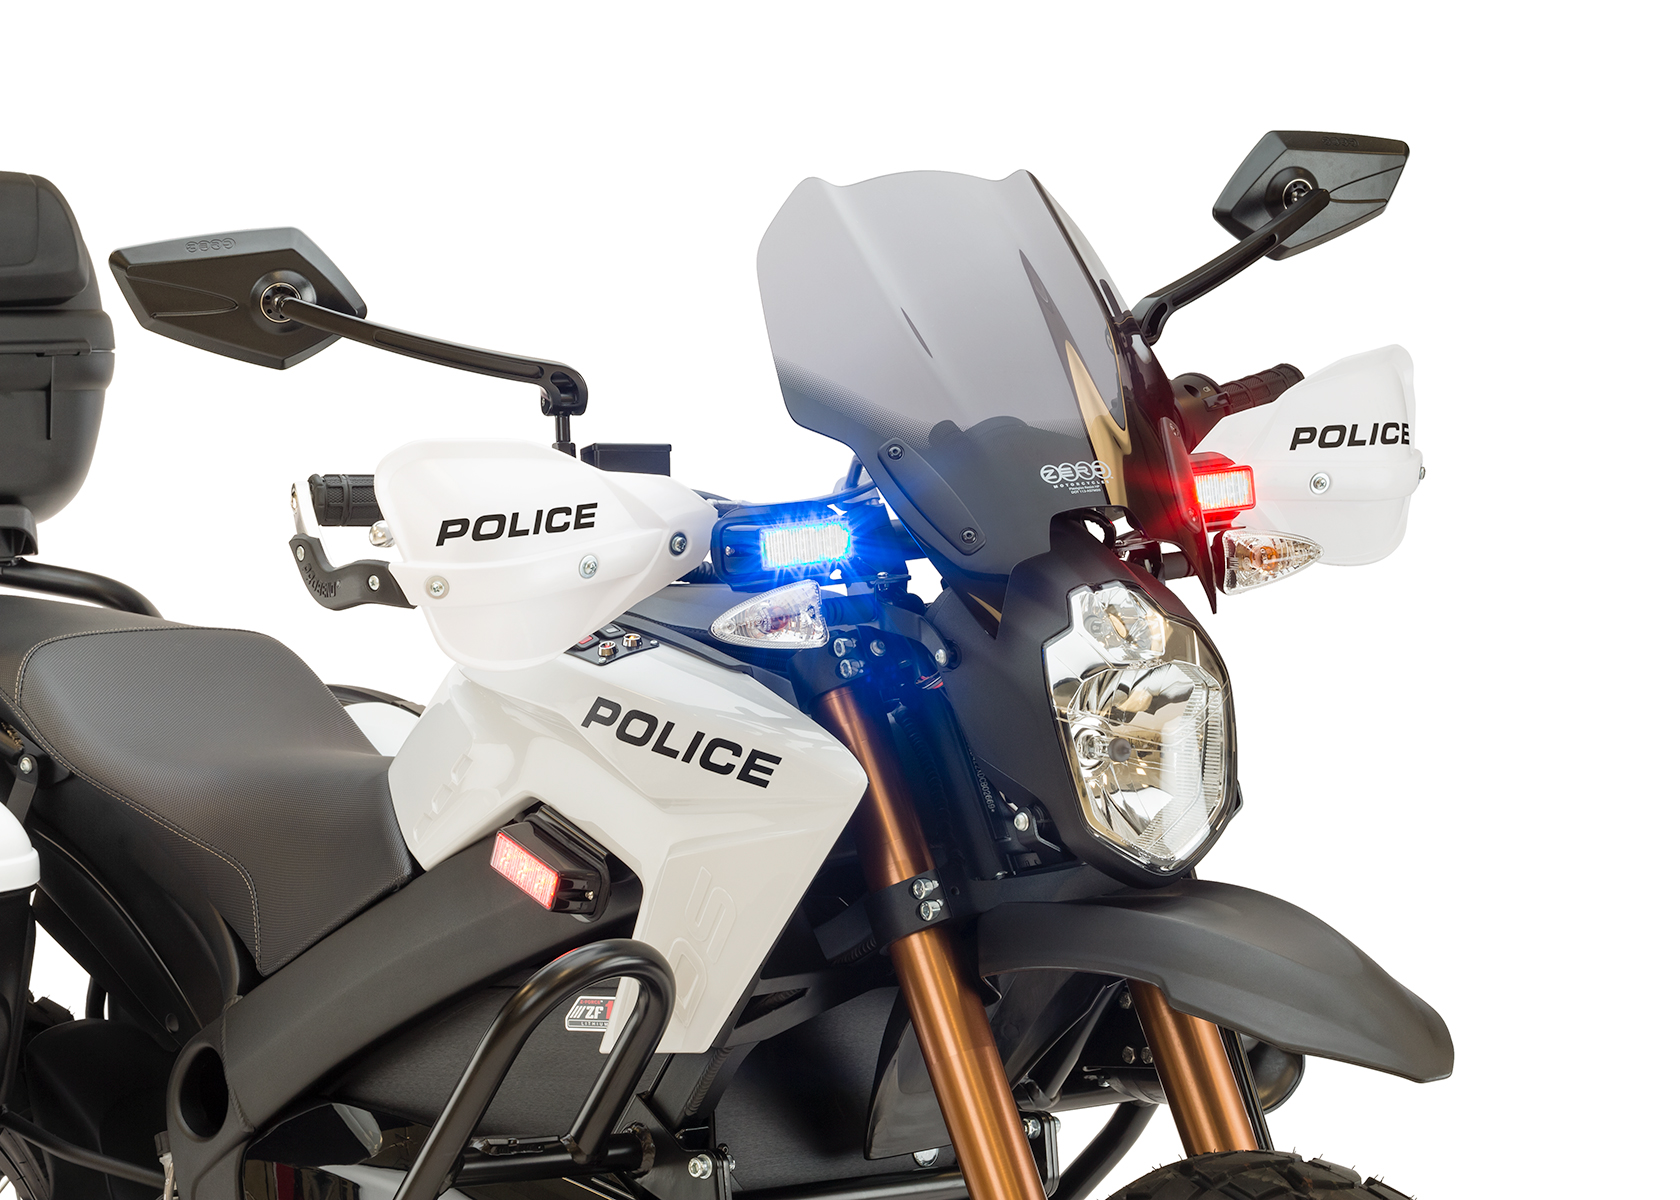 2013 Zero Police Electric Motorcycle: Right angle, Lights